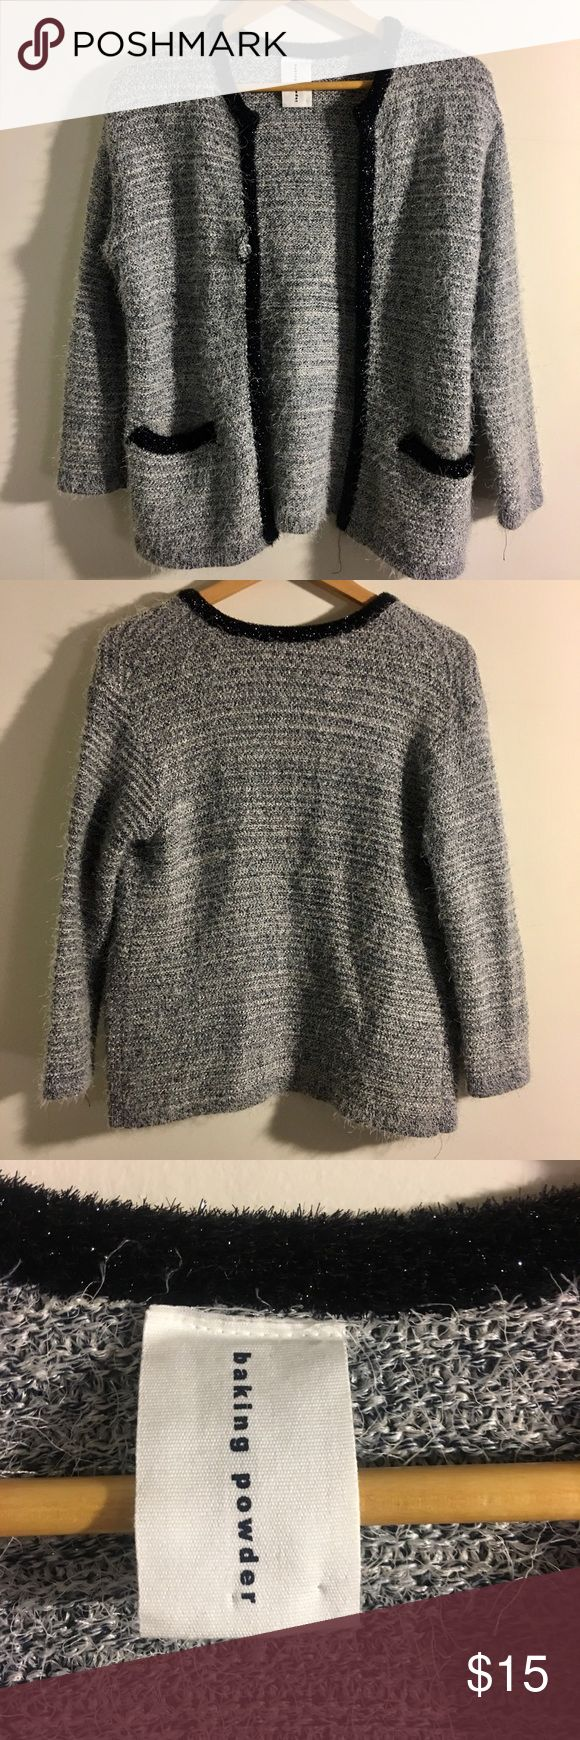 Gray Knit Cardigan with Metallic Hem Super cute gray knit cardigan sweater with a black metallic trim on hems. Small 1 inch tear at Hem near shoulder, pictured, priced accordingly. Worn a few times, still in like new condition! Baking Powder Sweaters Cardigans